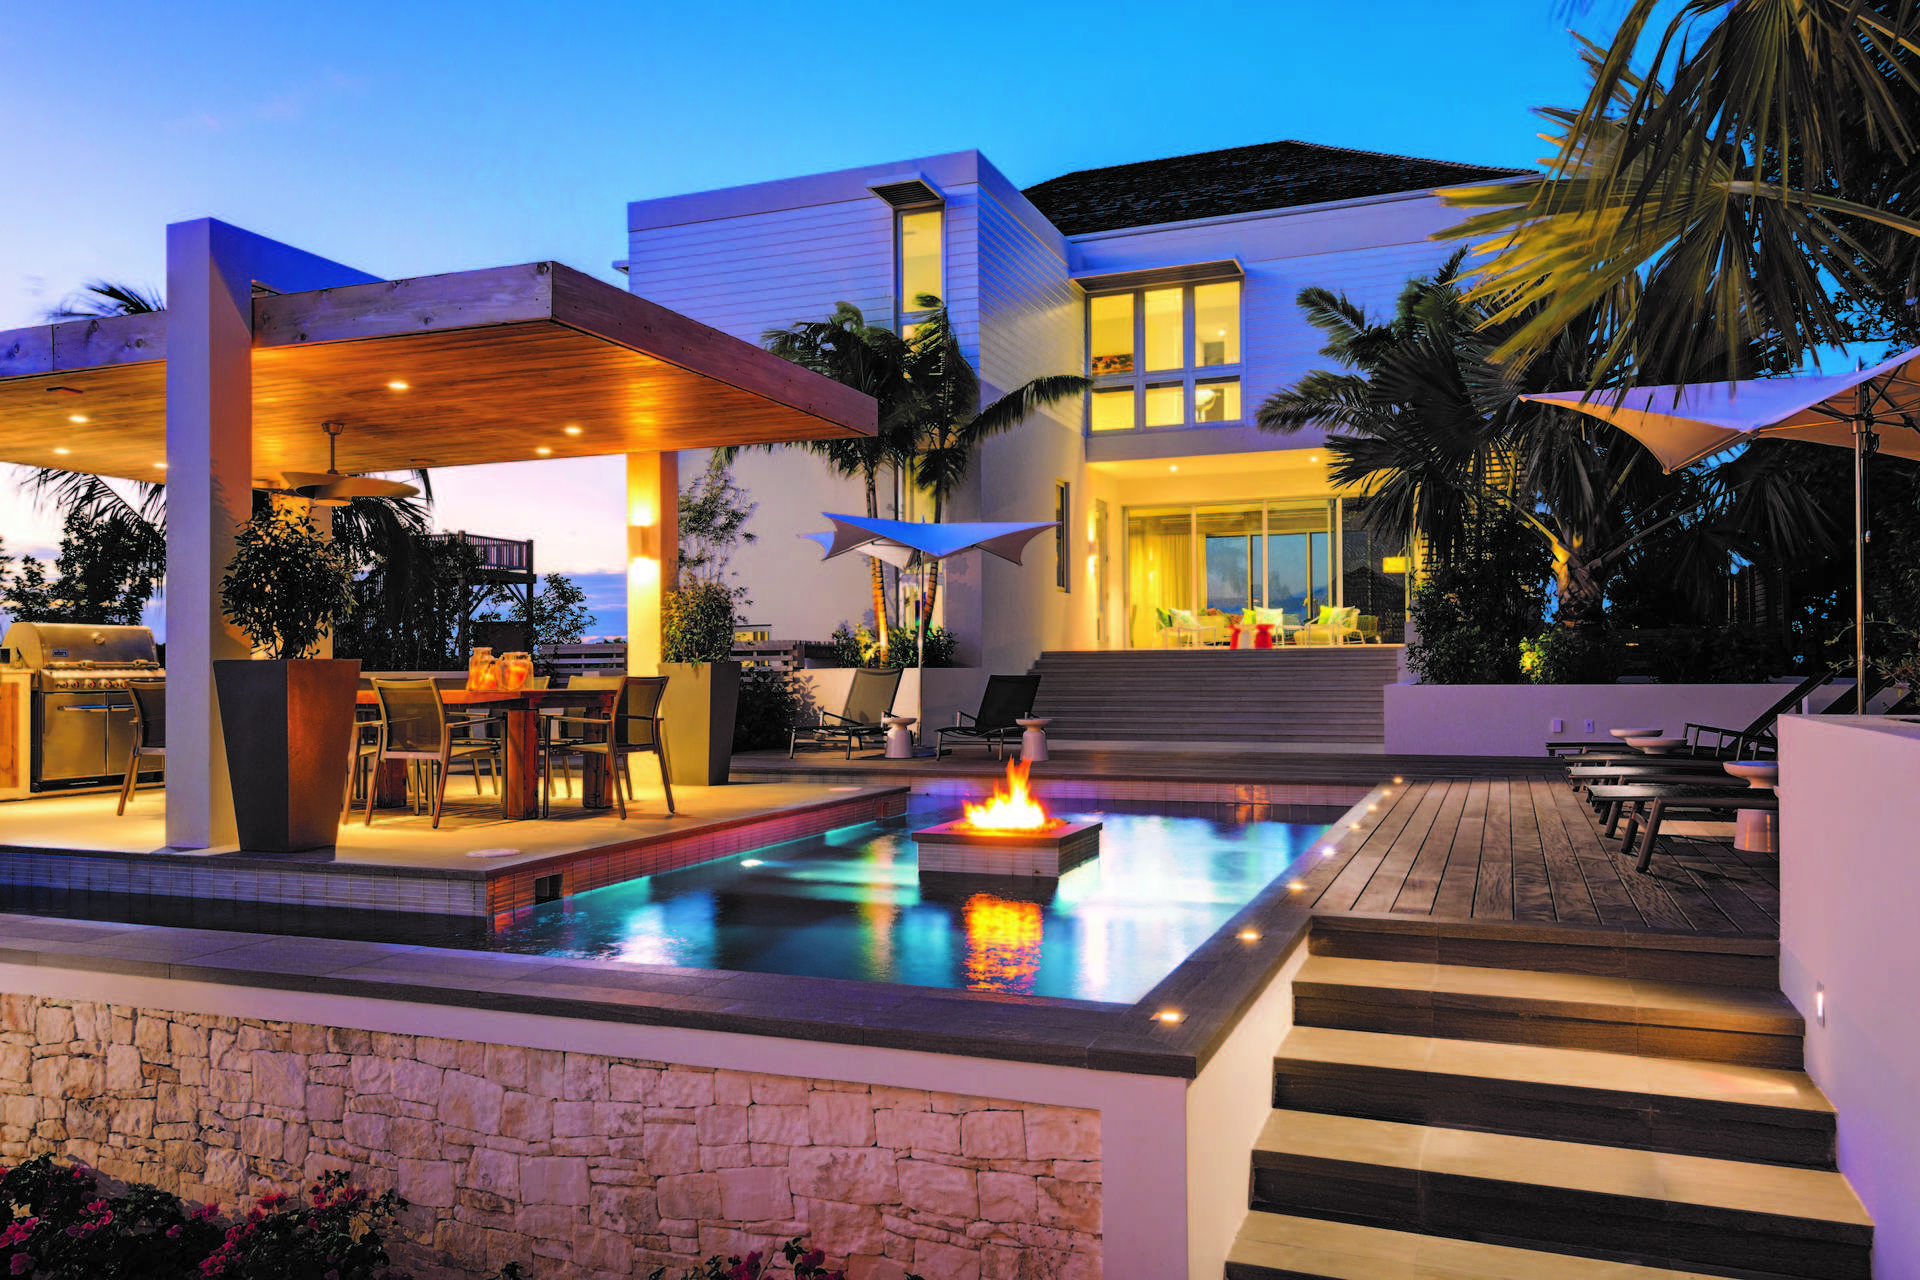 Luxury villa rentals caribbean - Turks and caicos - Providenciales - Grace bay - The Dunes | Turtle Inlet - Image 1/6